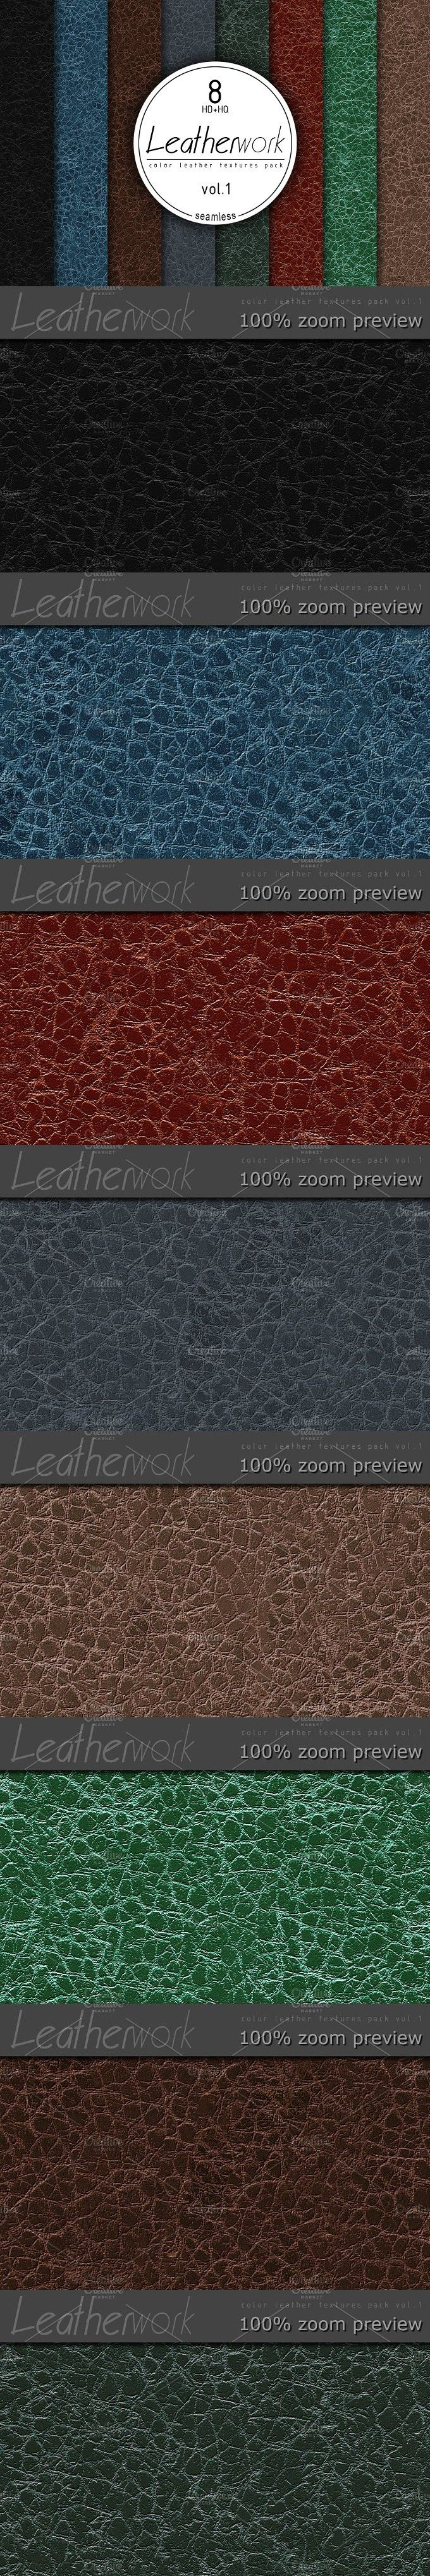 Leather Seamless HD textures vol.1. 3D Textures & Materials